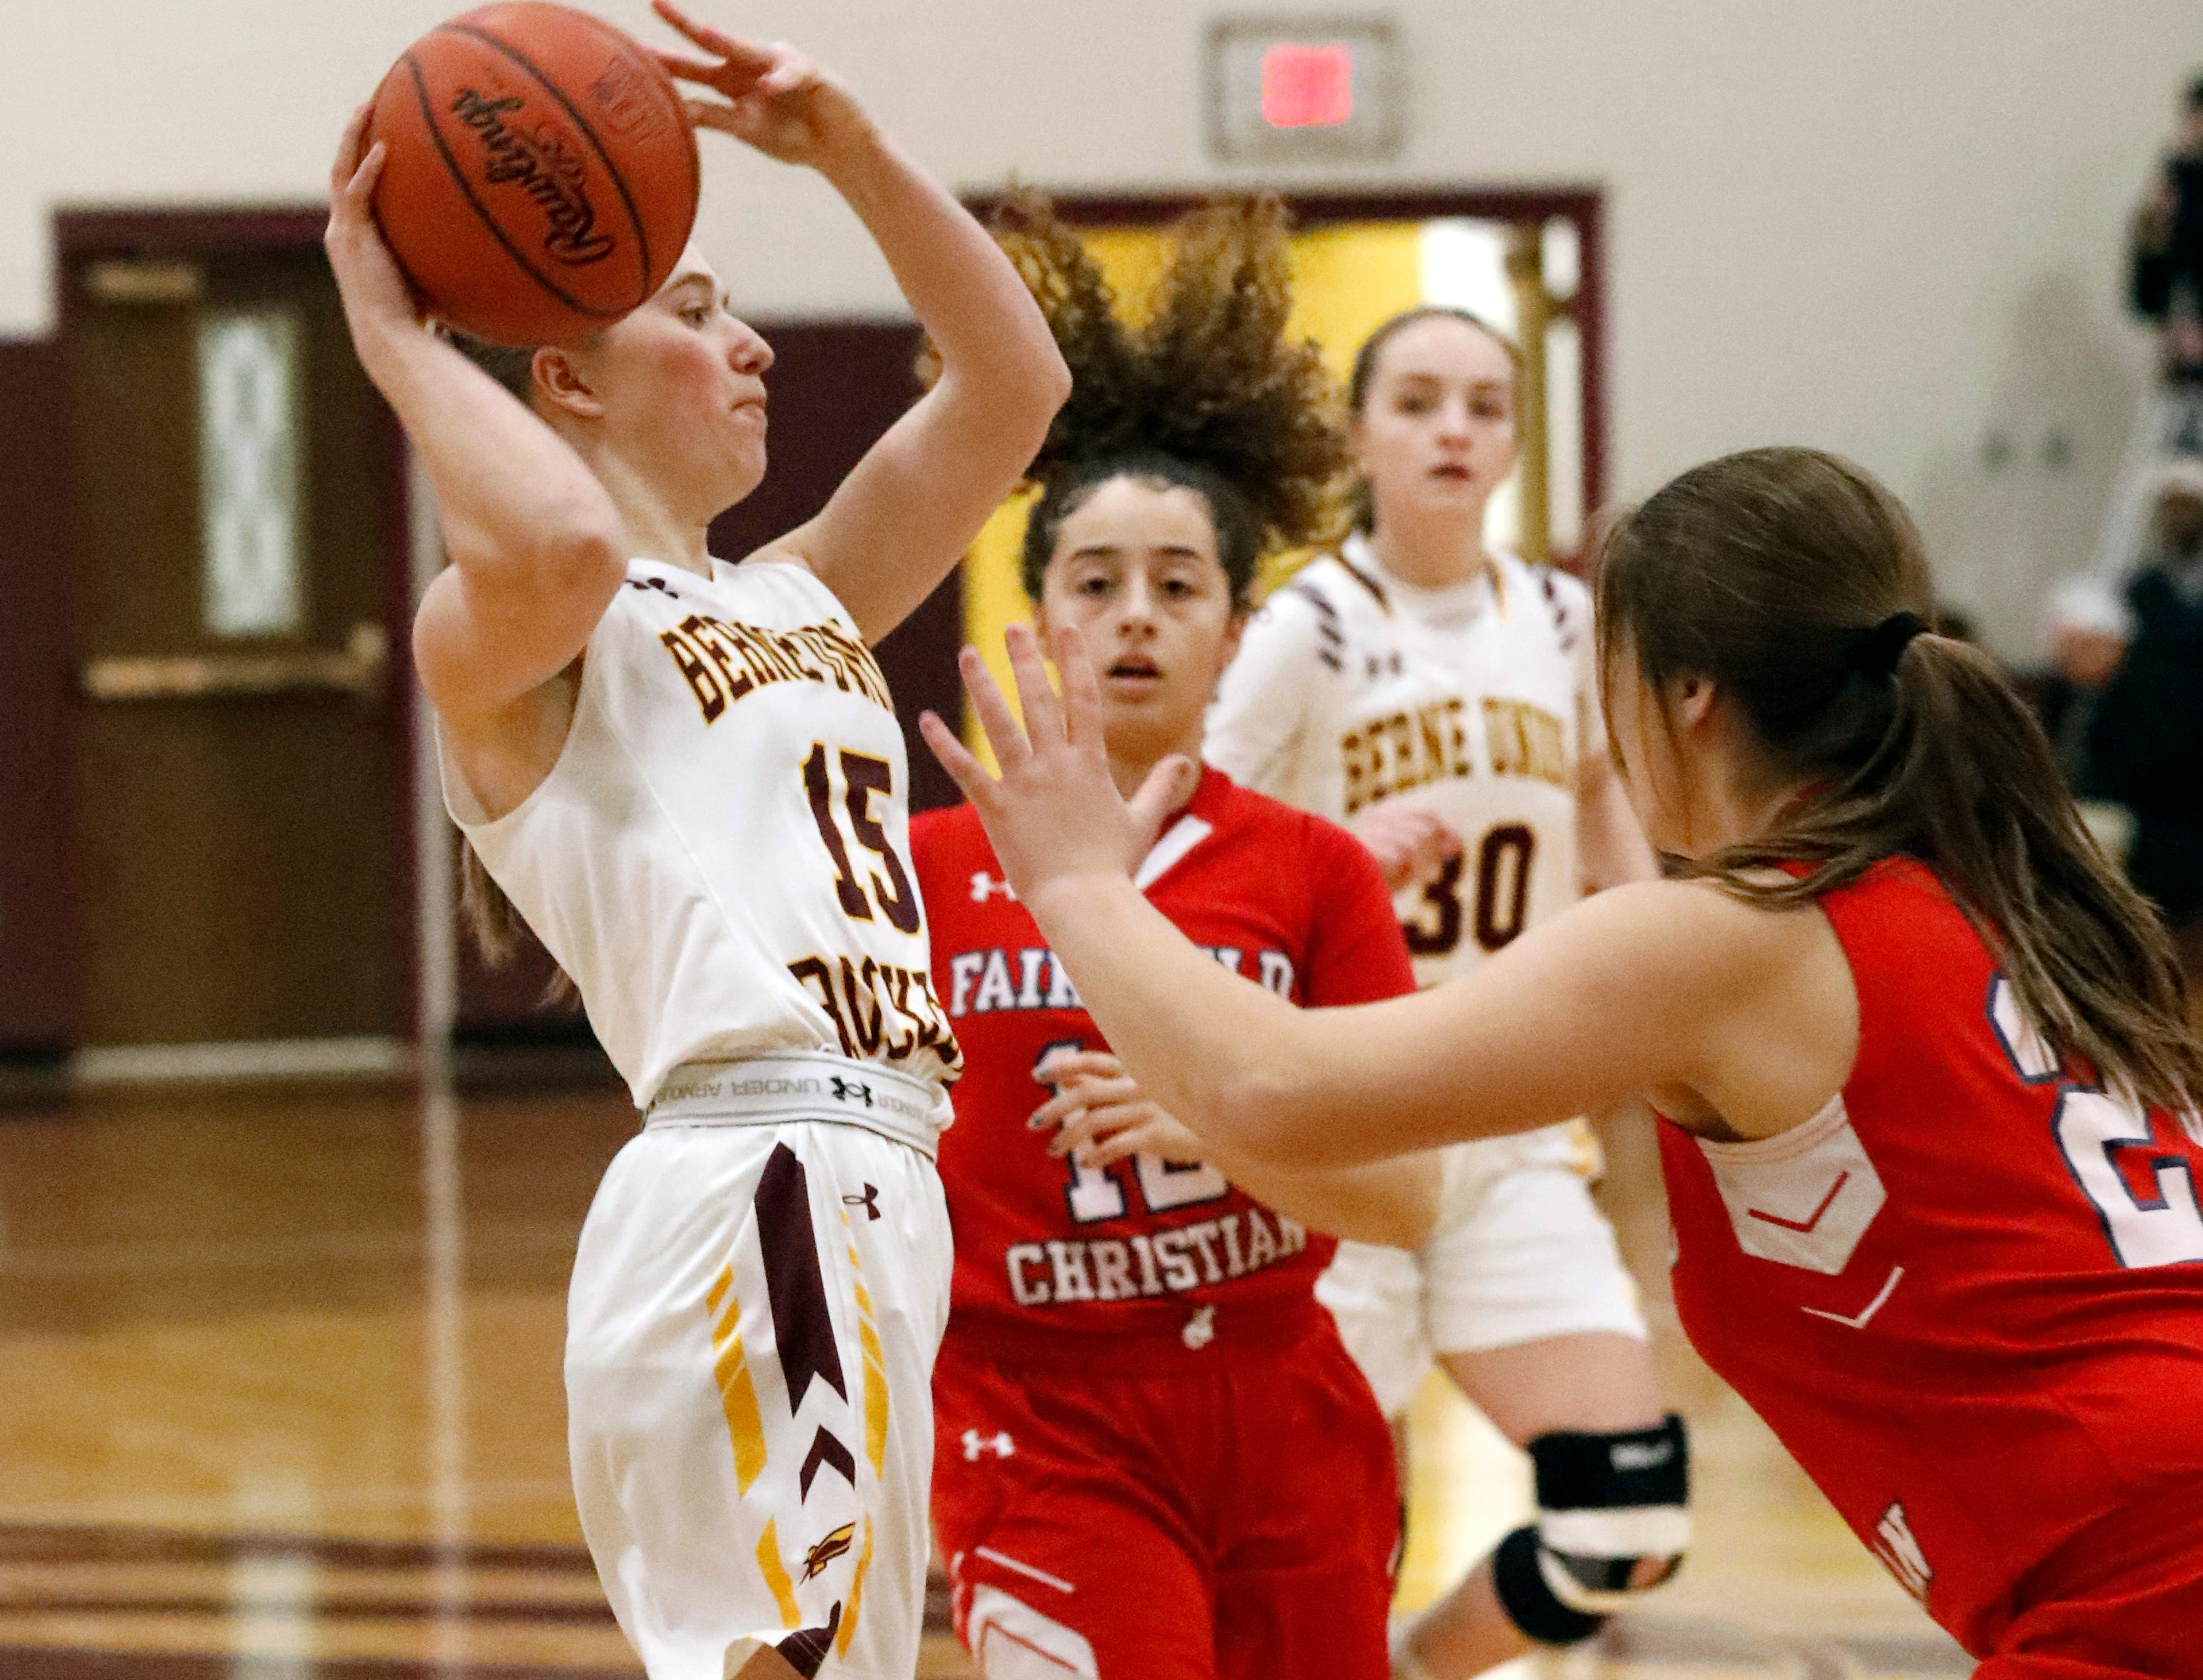 Fairfield Christian defeated Berne Union 84-37 Tuesday night, Jan. 29, 2019, at Berne Union High School in Sugar Grove.